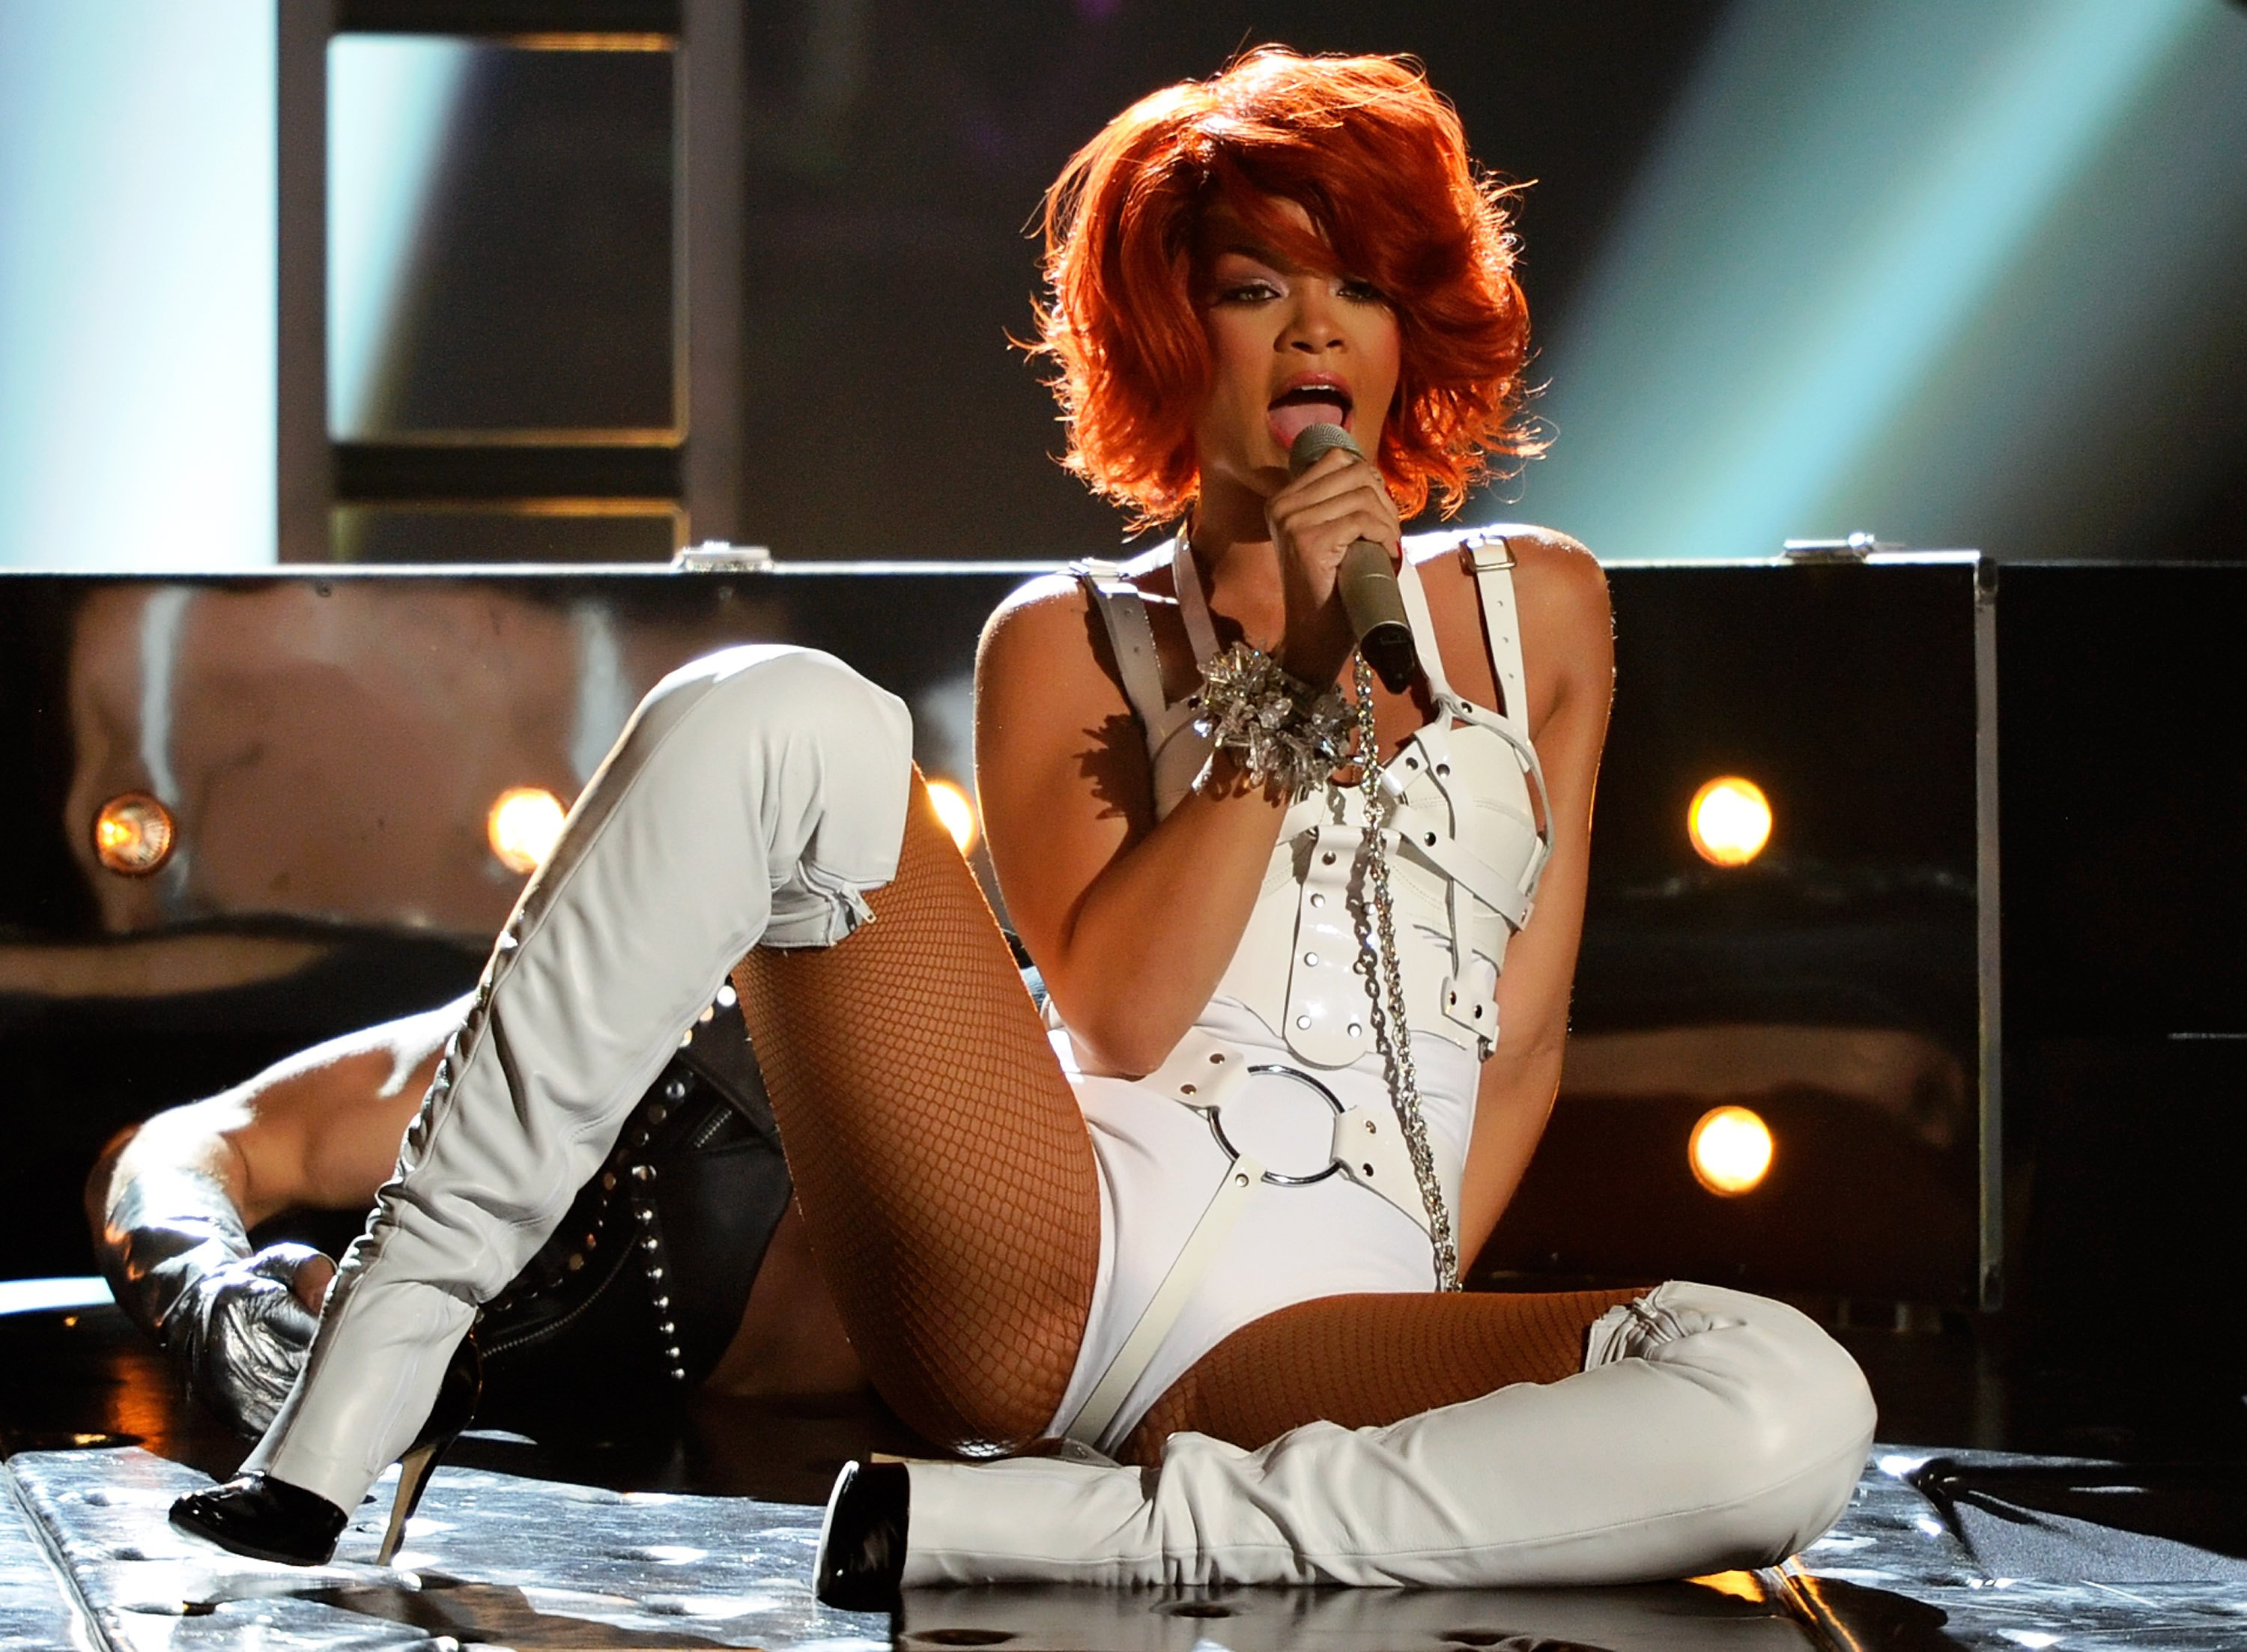 LAS VEGAS, NV - MAY 22:  Singer Rihanna performs during the 2011 Billboard Music Awards at the MGM Grand Garden Arena May 22,